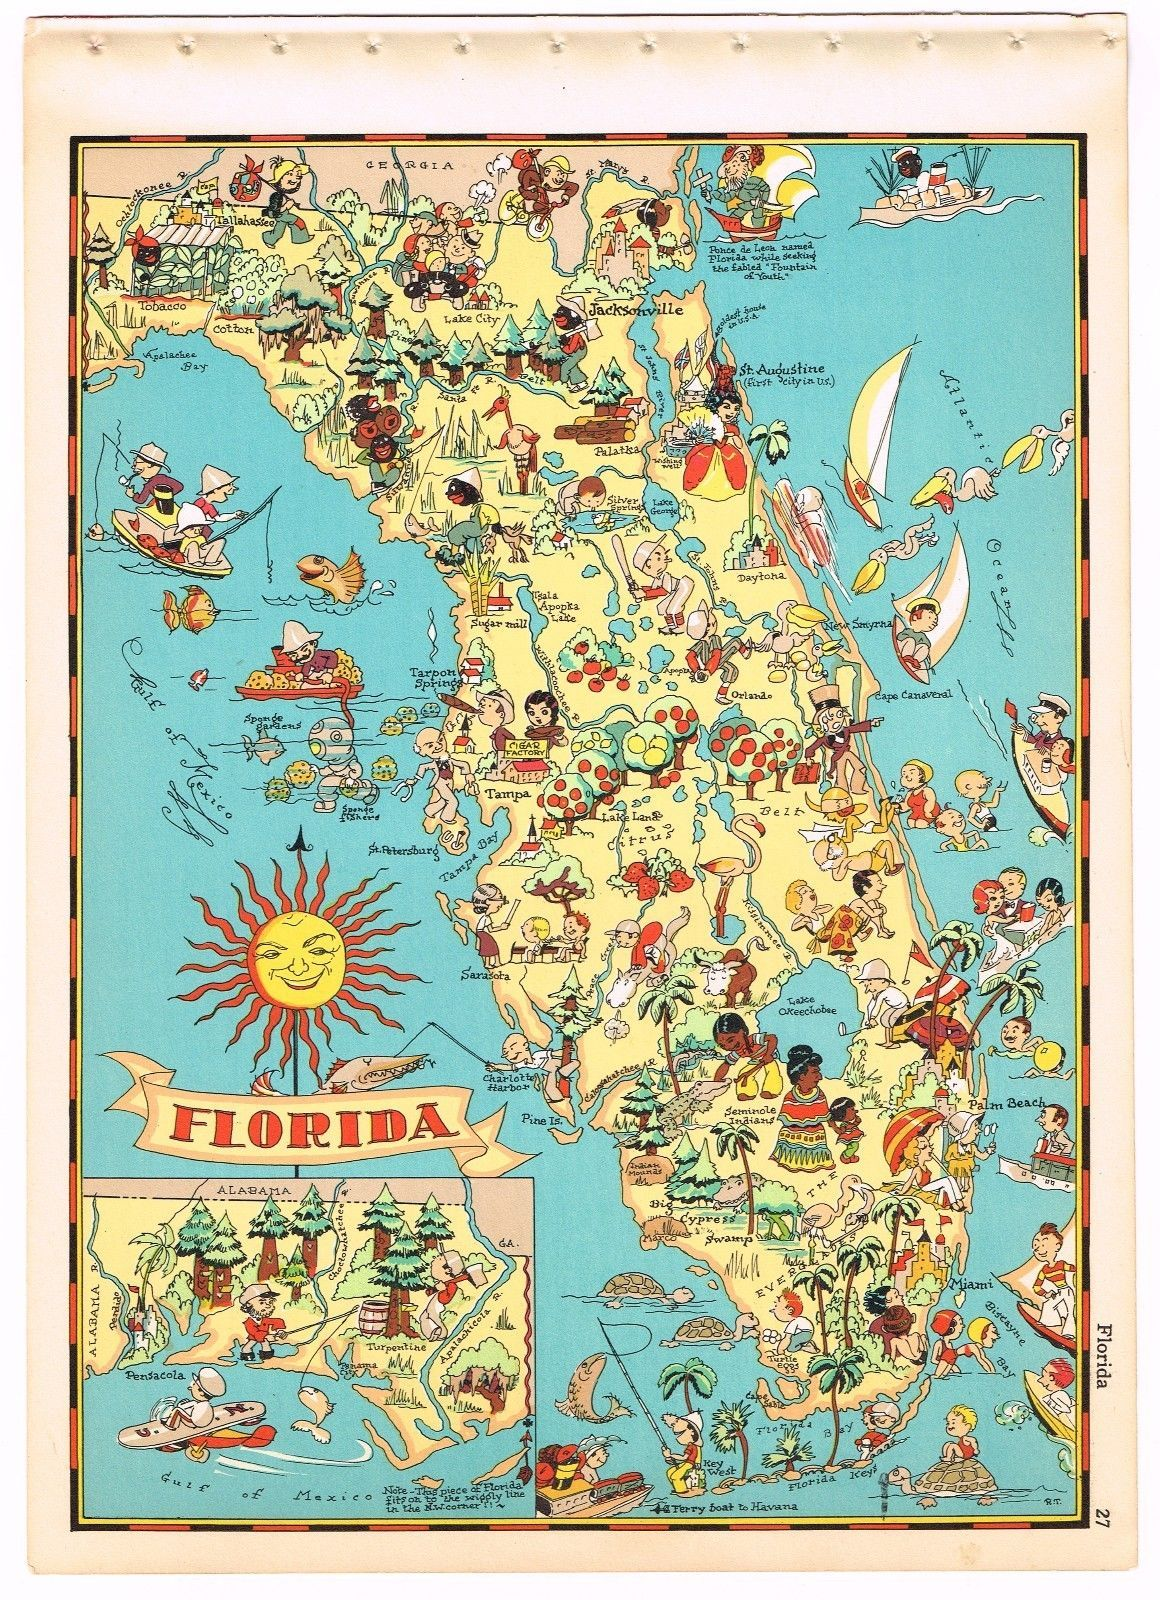 Details about RUTH TAYLOR VINTAGE NEW JERSEY MAP CARTOON ... on florida bmx tracks map, florida watercolor map, naples fort myers florida map, florida sightseeing map, florida art map, florida turnpike map with mile markers, florida theater map, florida local map, florida nfl map, florida field map, florida museums map, florida fish map, florida orienteering map, florida gulf map, florida destinations map, florida motocross track map, florida gas prices map, florida places of interest map, florida tequesta map, florida craft beer map,